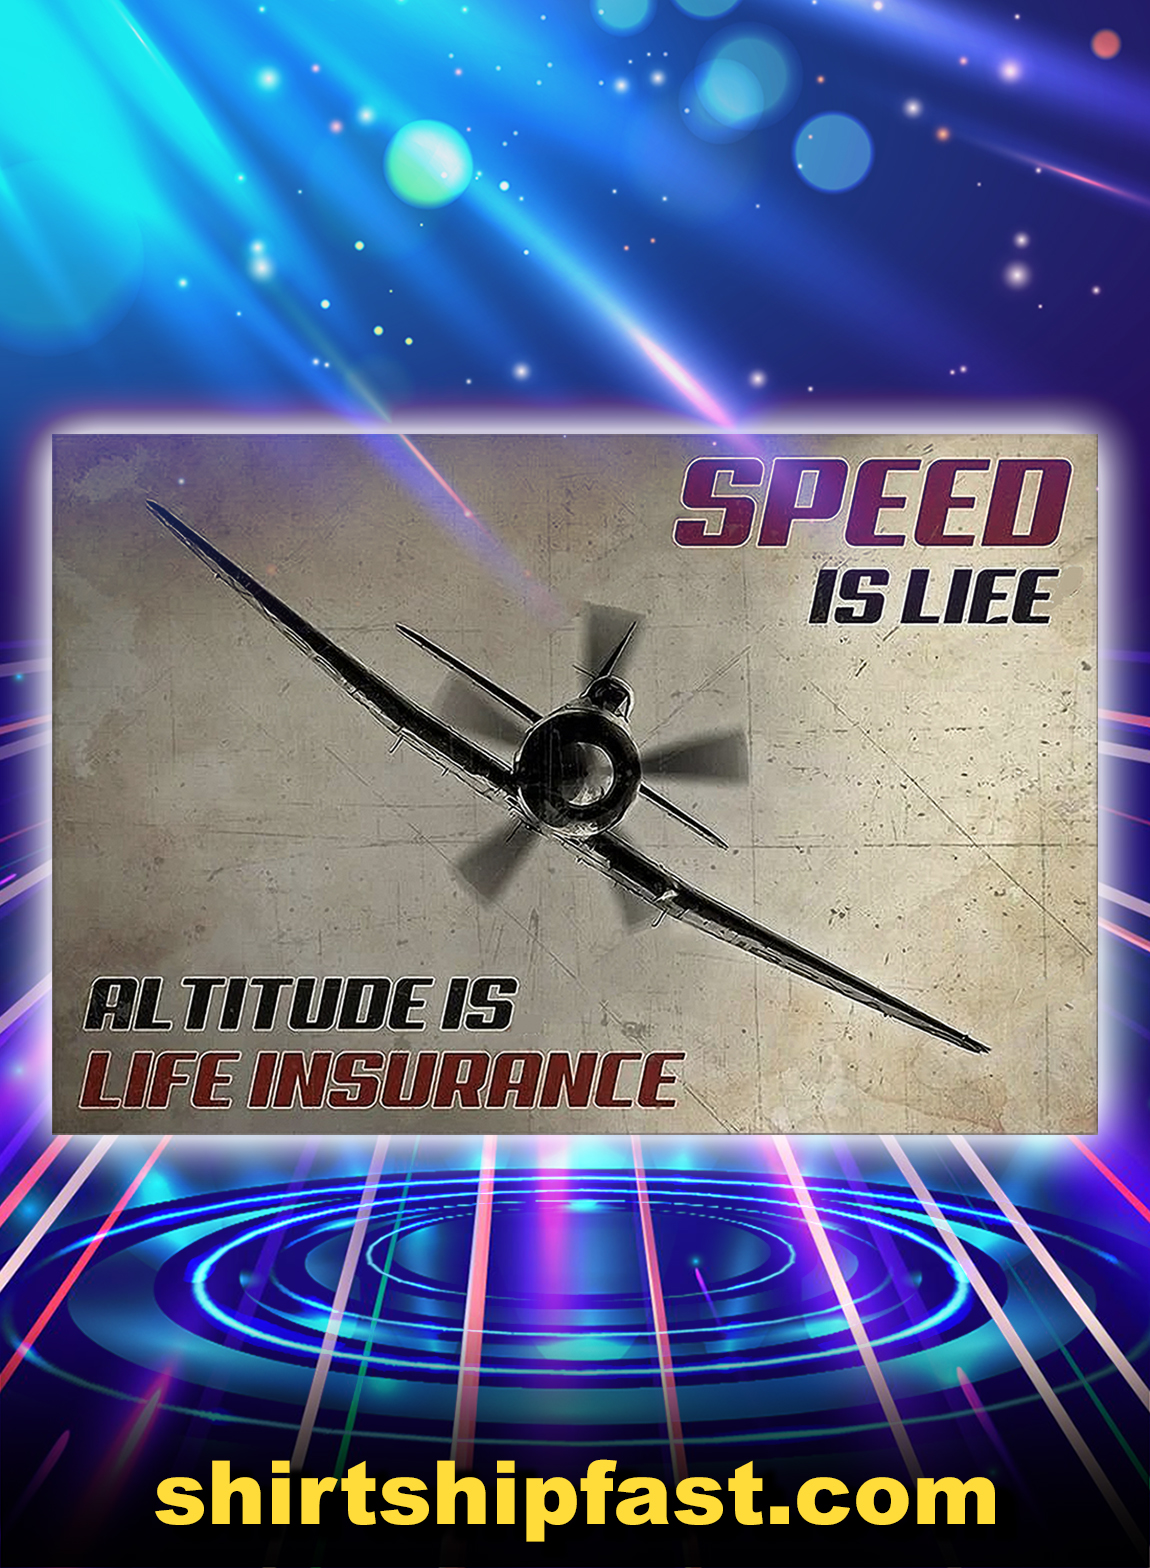 Pilot speed is life altitude is life insurance poster - A2